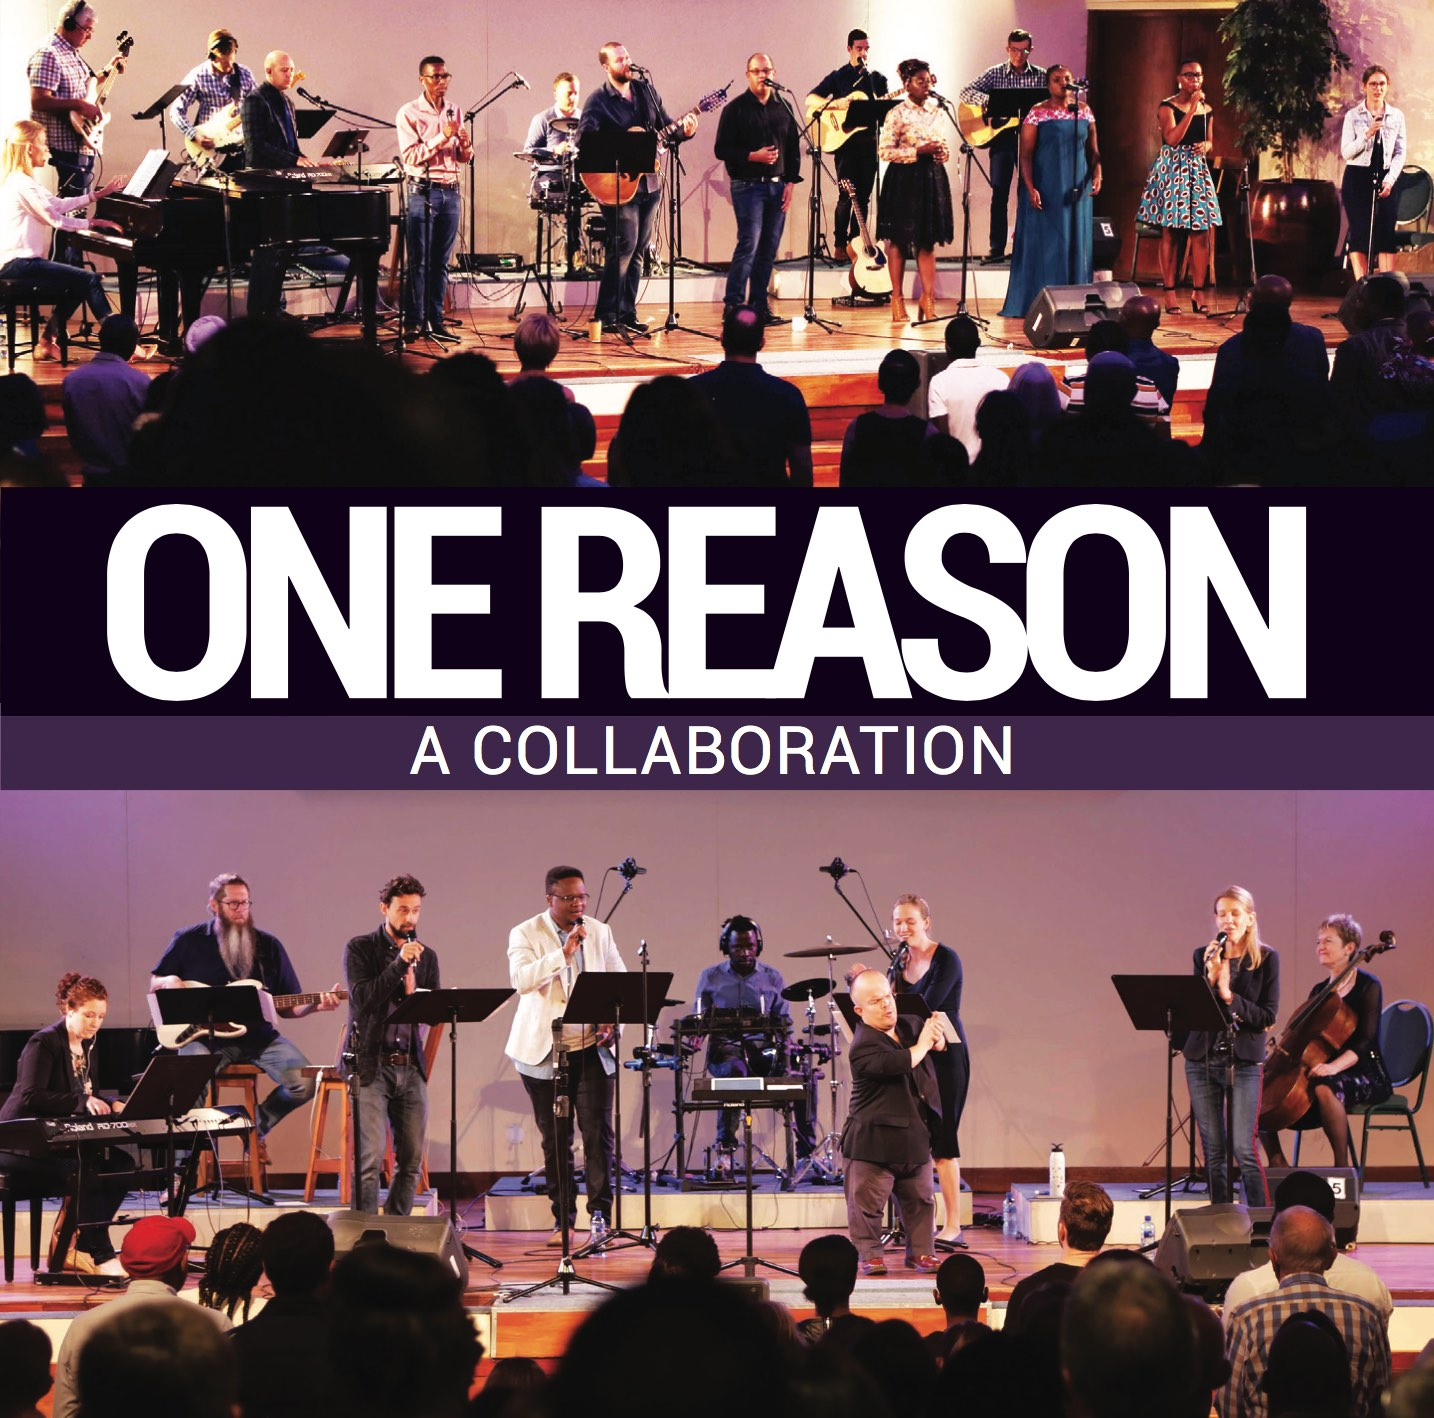 One Reason Album Cover Image Final